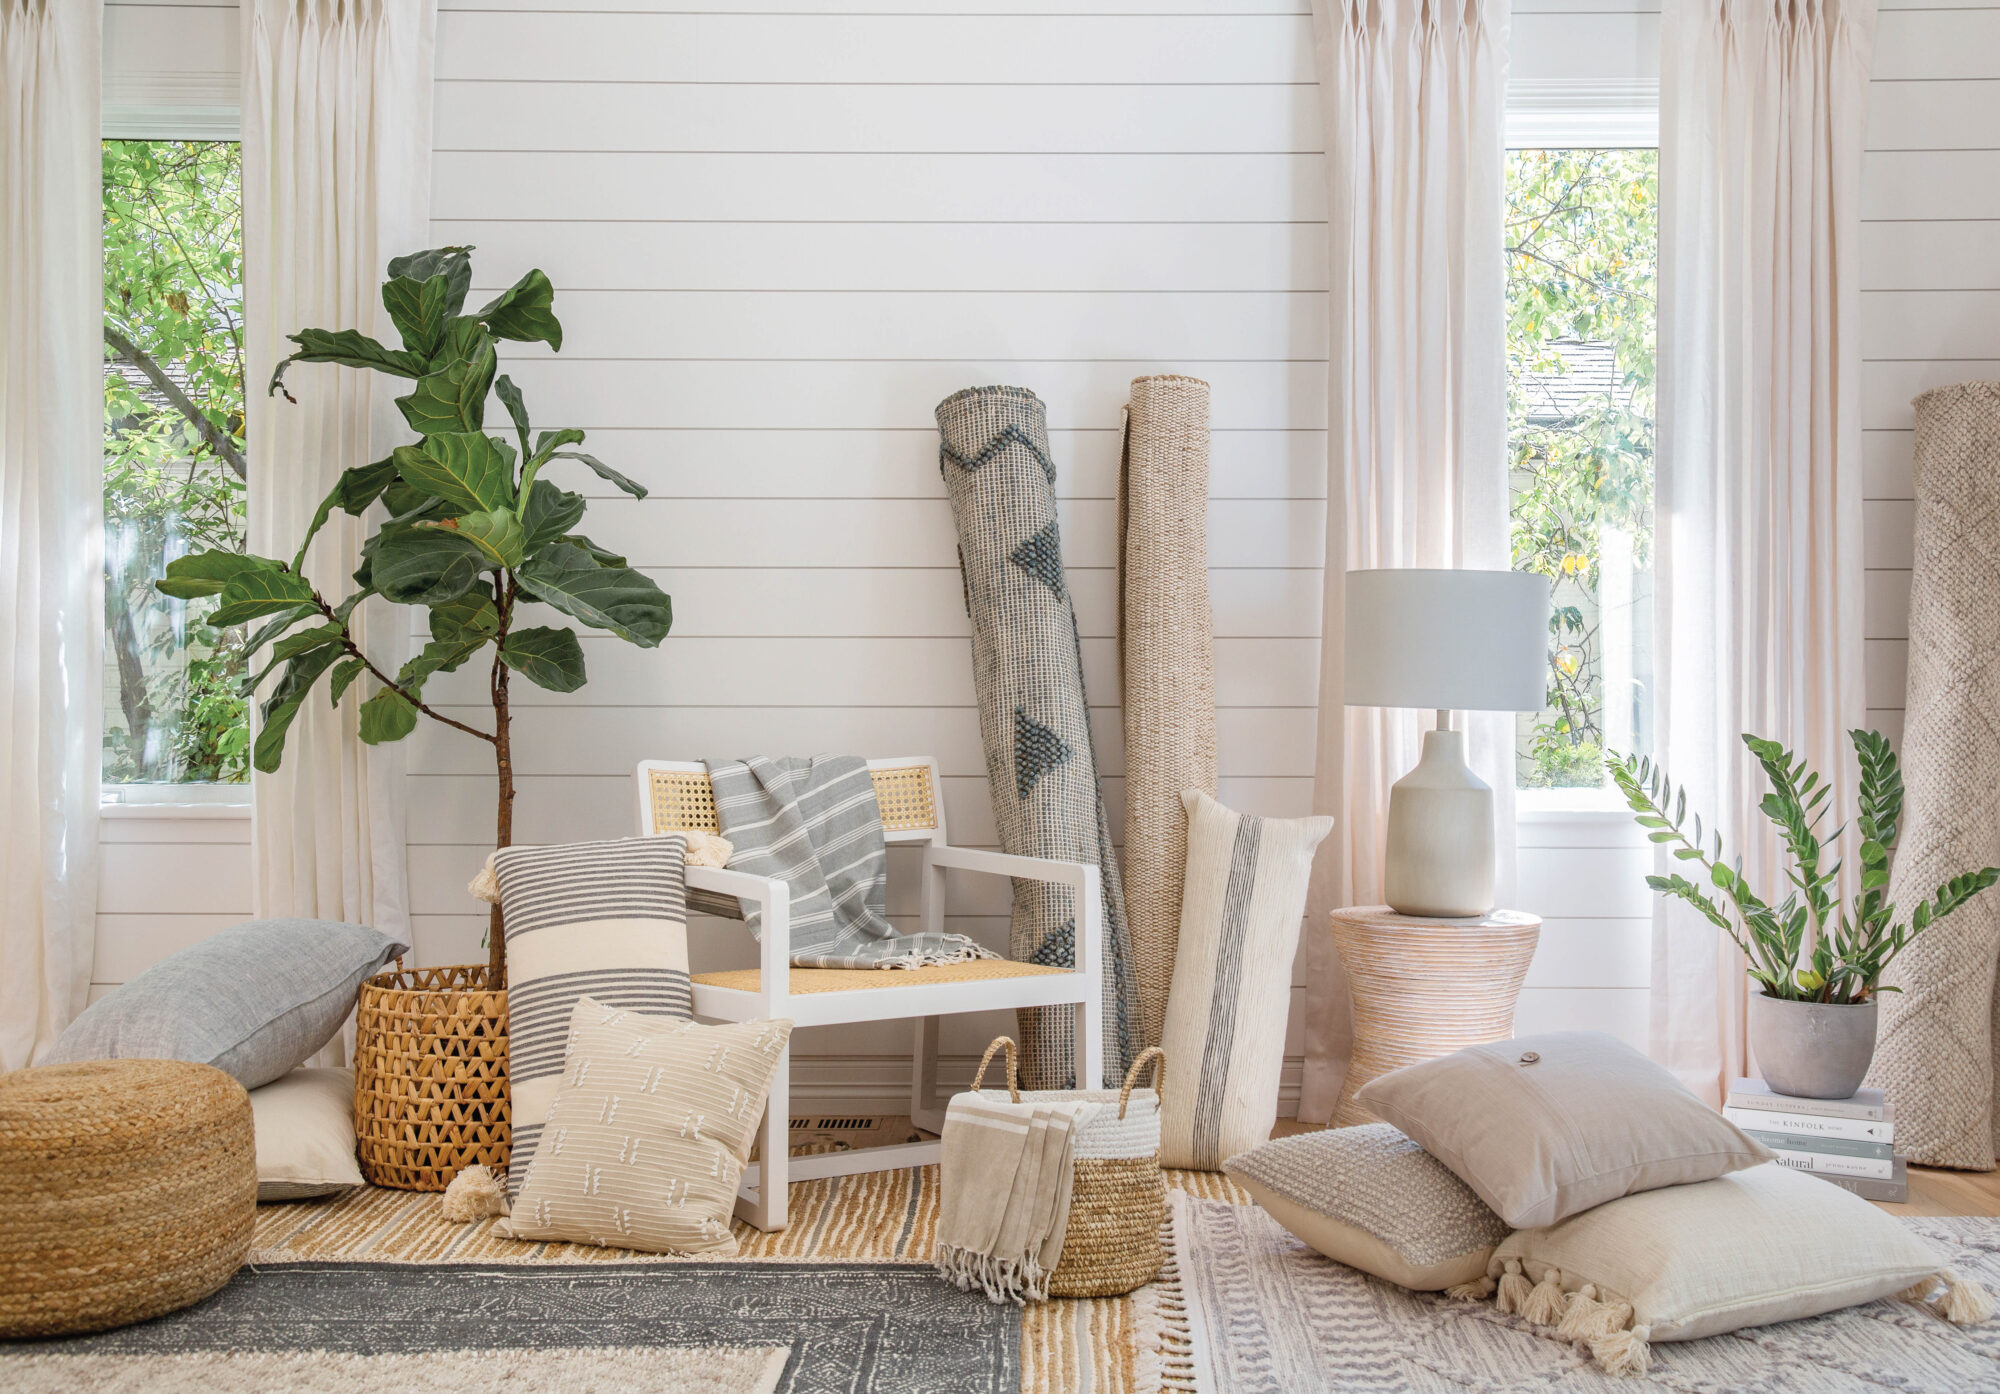 stacks of pillows and fabric with plants in the corners